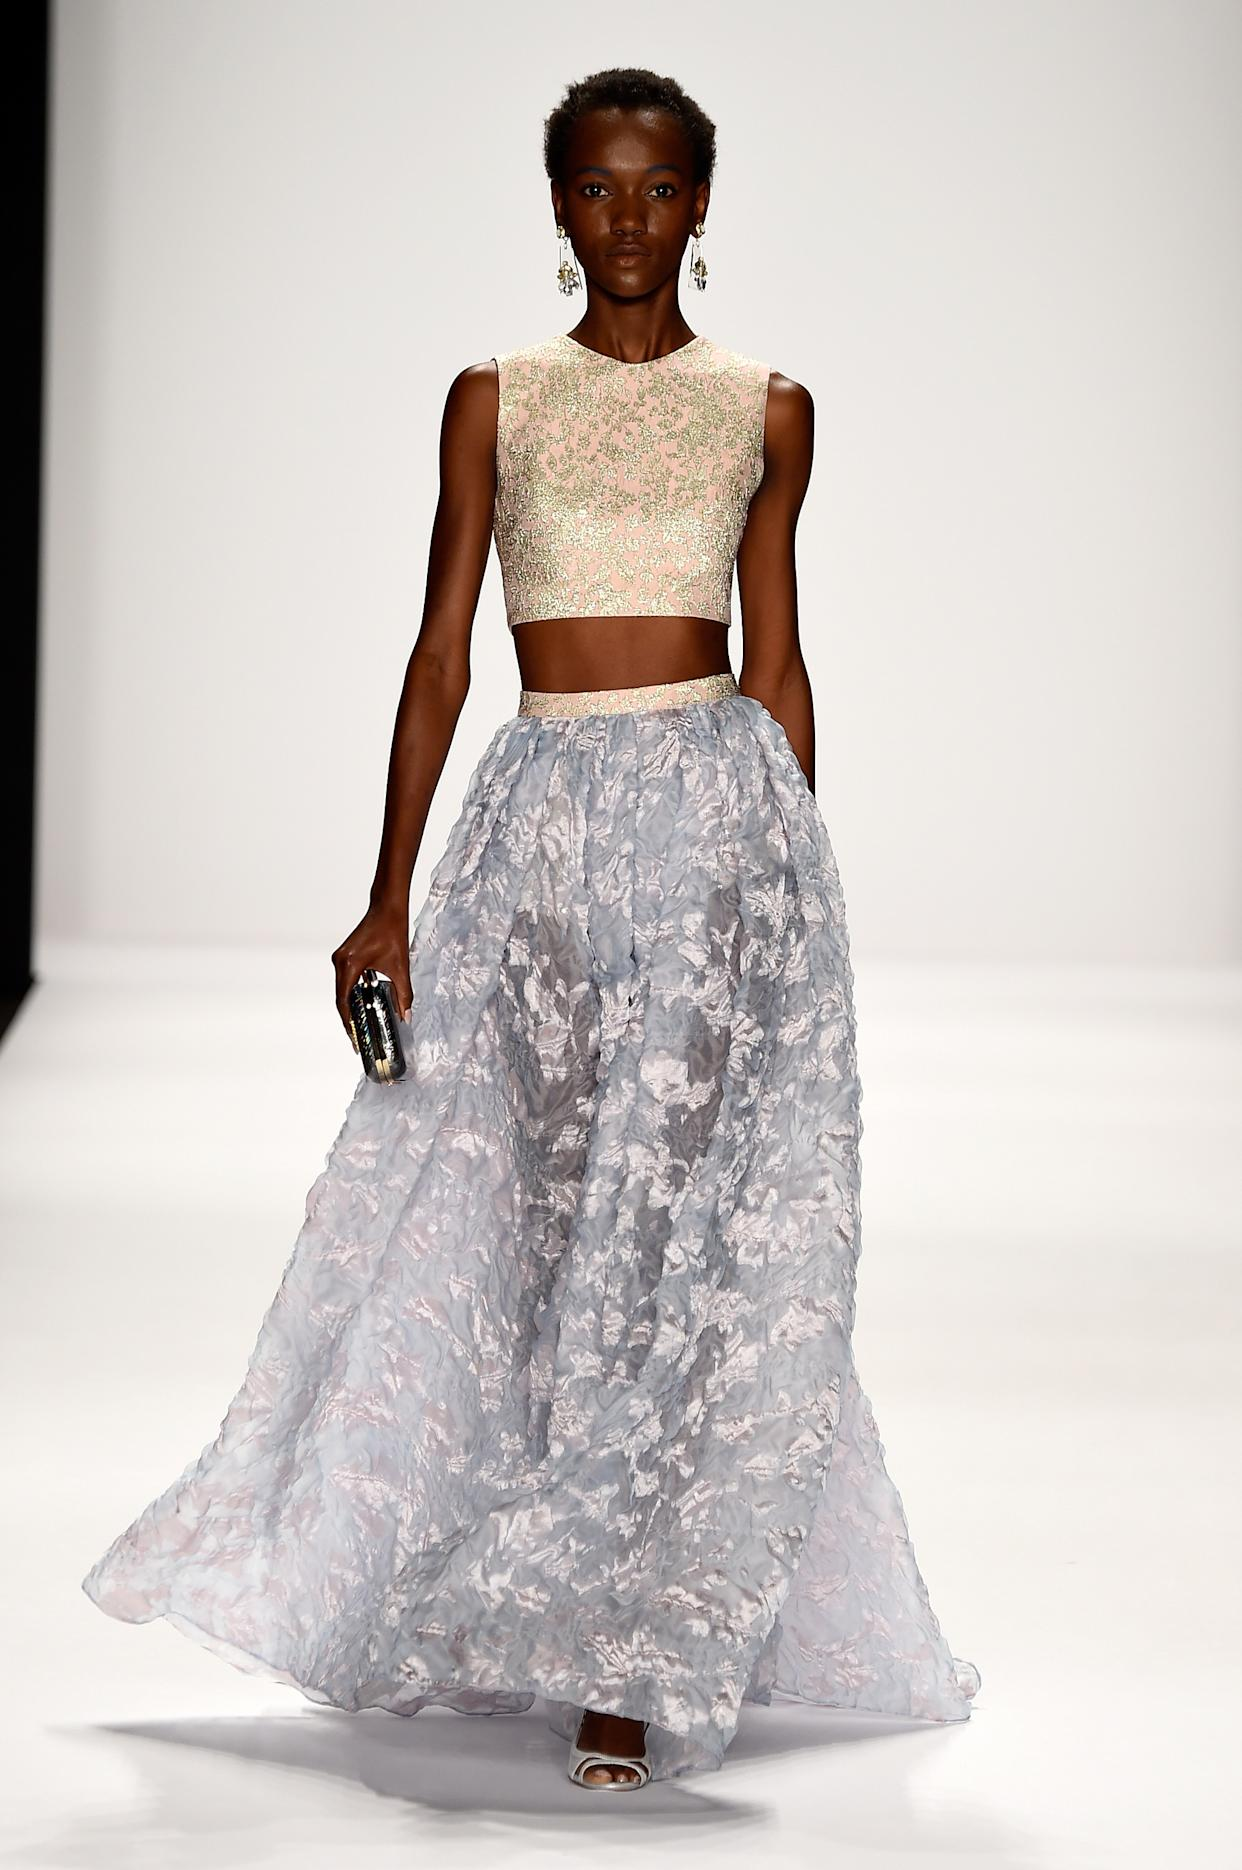 Mercedes-Benz Fashion Week Spring 2015 - Official Coverage - Best Of Runway Day 6